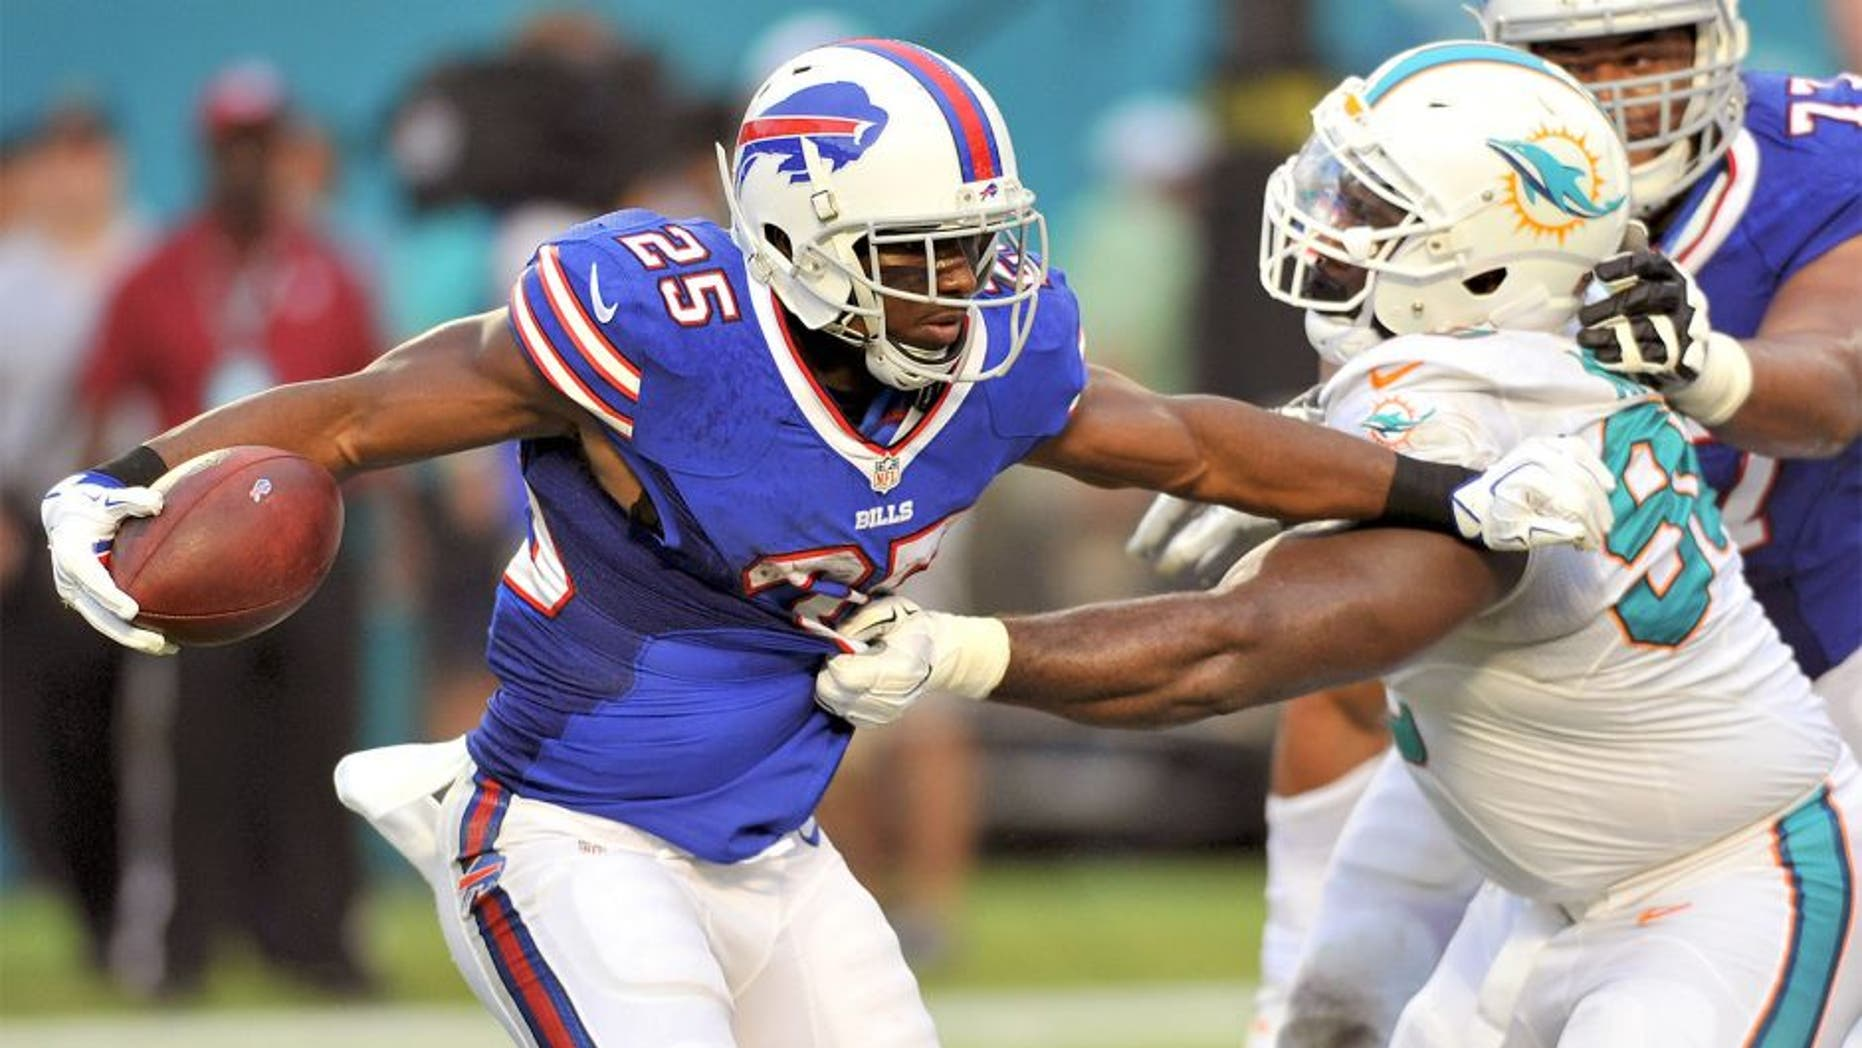 Sep 27, 2015; Miami Gardens, FL, USA; Buffalo Bills running back LeSean McCoy (25) is tackled by Miami Dolphins defensive tackle Earl Mitchell (90) during the first half at Sun Life Stadium. Mandatory Credit: Steve Mitchell-USA TODAY Sports